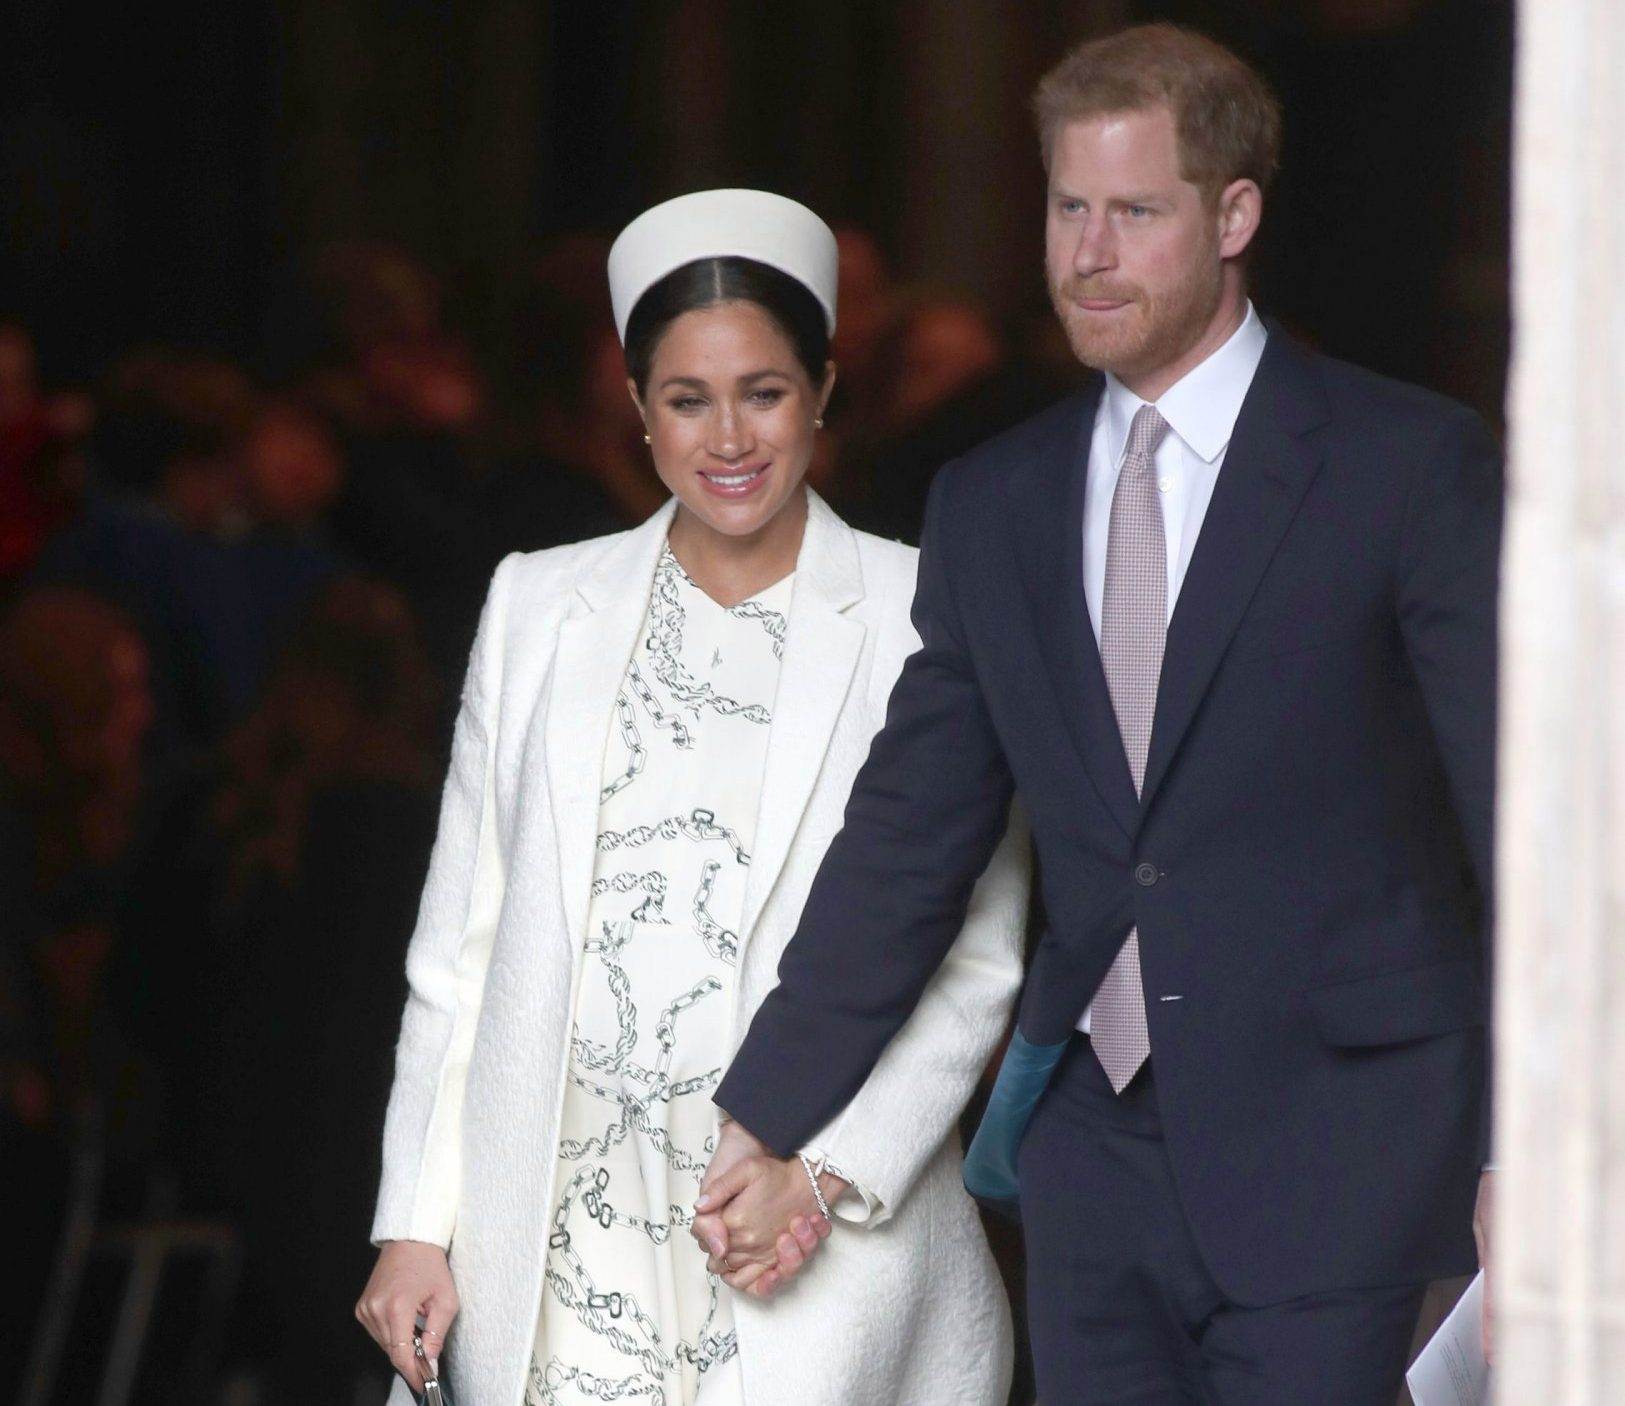 The Duke and Duchess of Sussex leave following a Commonwealth Service at Westminster Abbey, London. PRESS ASSOCIATION Photo. Picture date: Monday March 11, 2019. See PA story ROYAL Commonwealth. Photo credit should read: Steve Parsons/PA Wire